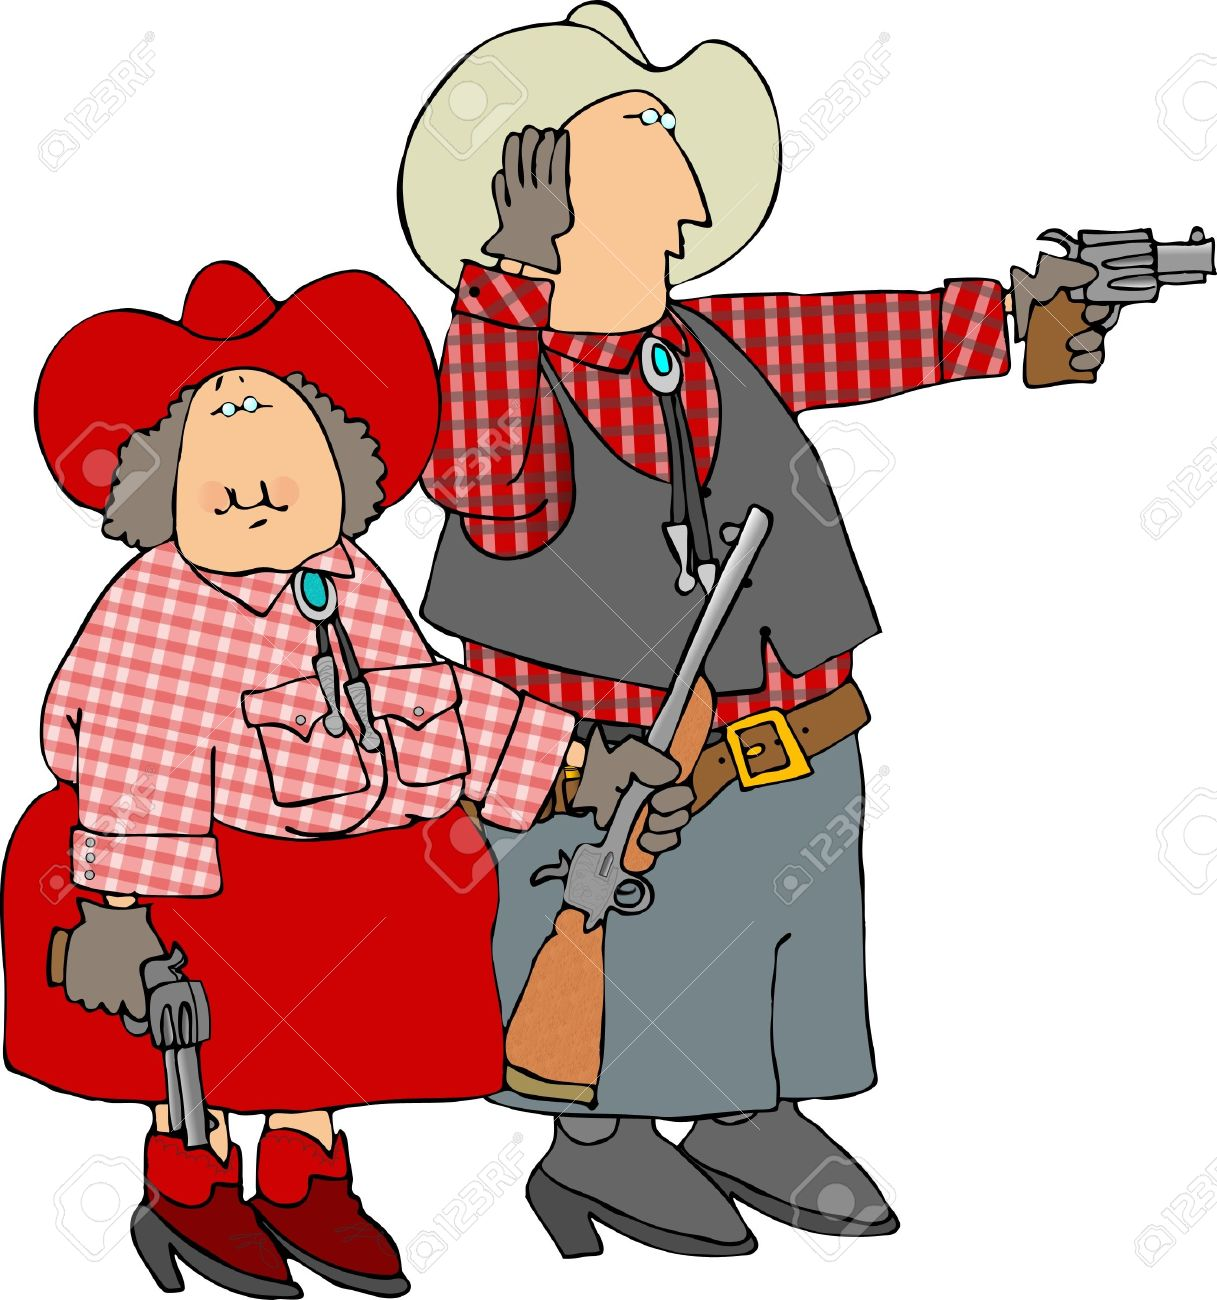 Man & Woman Shooting Guns Stock Photo, Picture And Royalty Free.